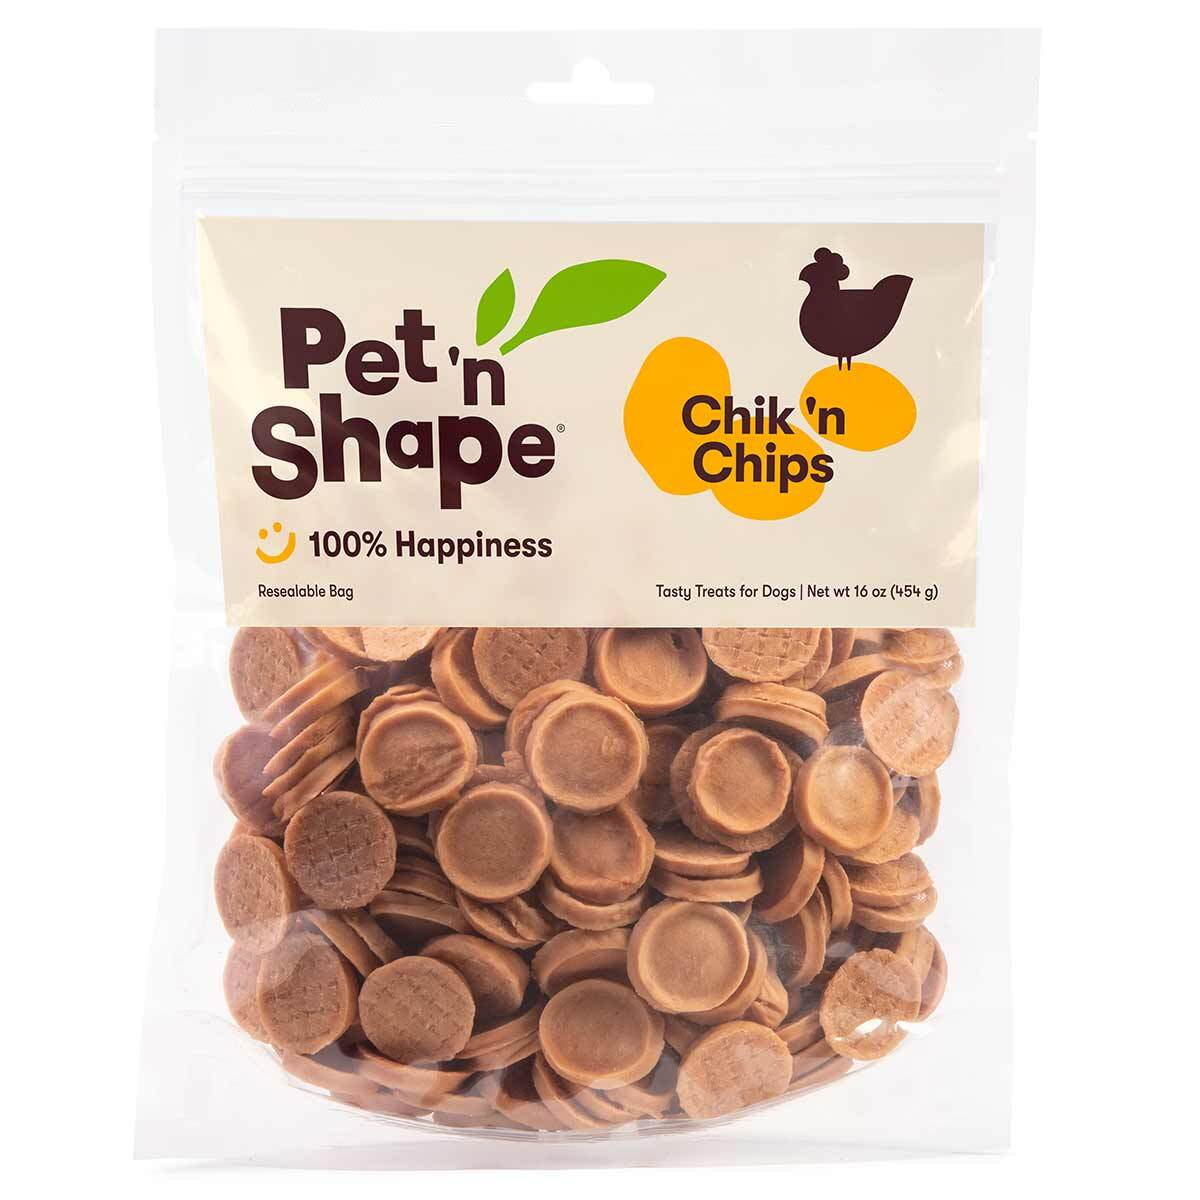 16 oz Pet 'n Shape Chik 'n Chips Dog Treats